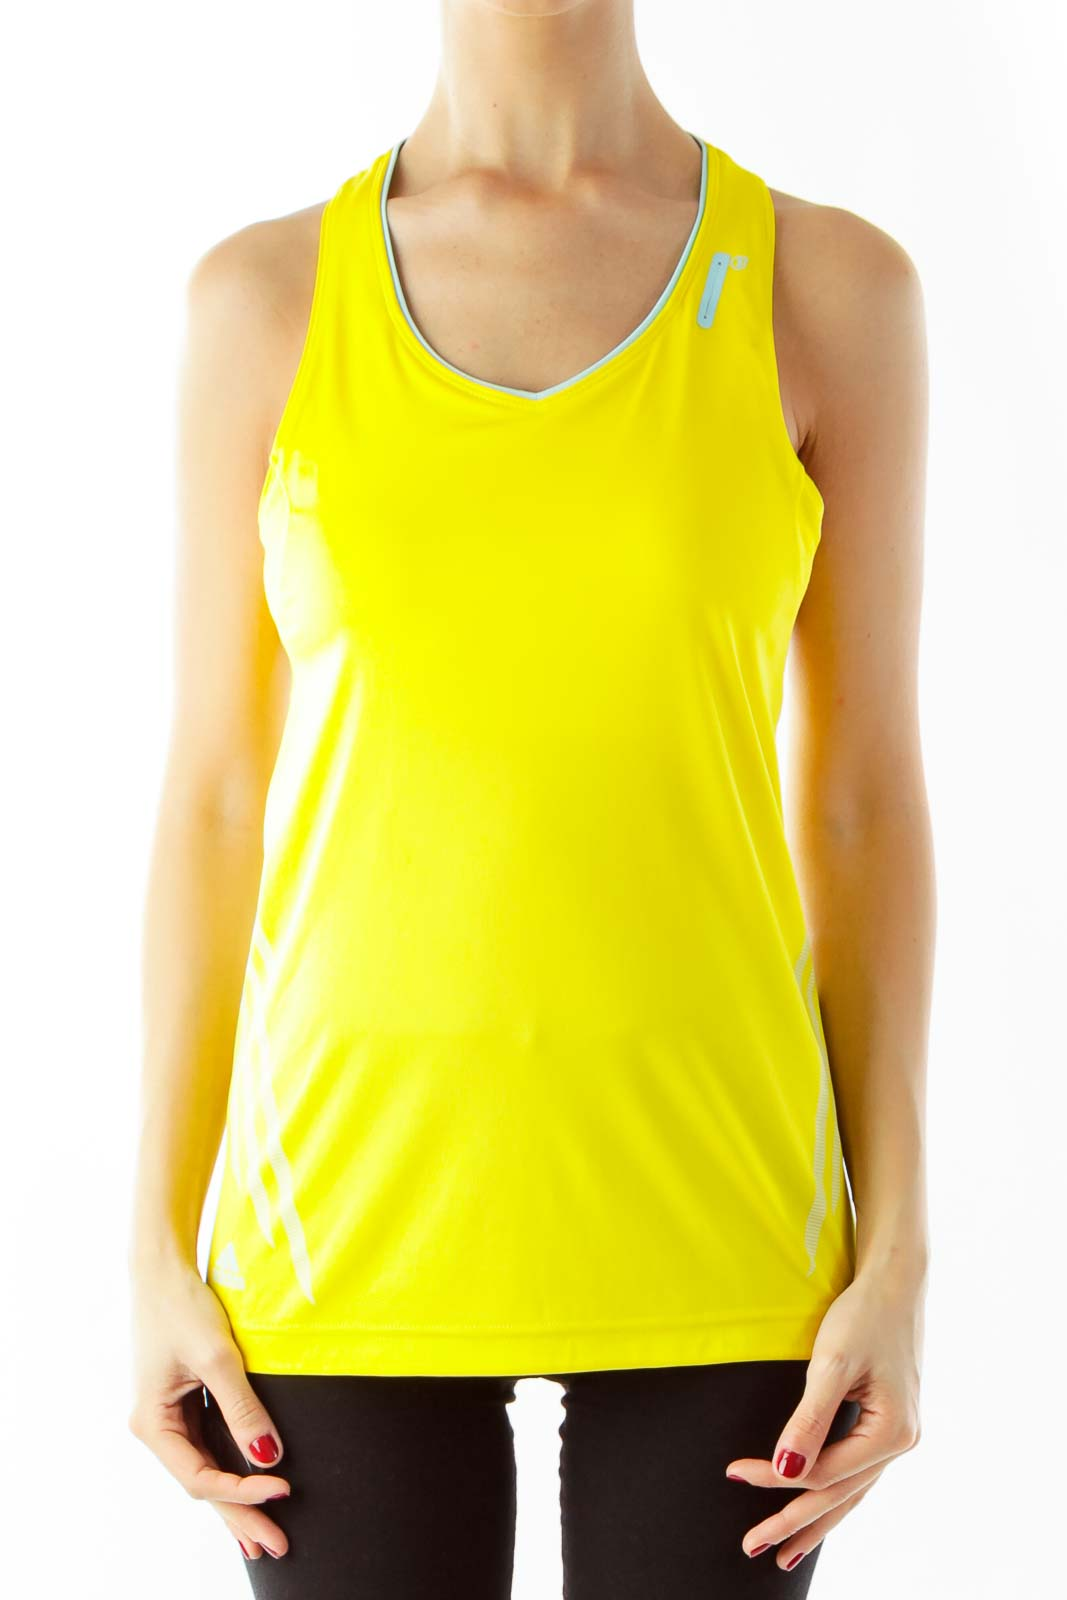 Yellow Sports Top